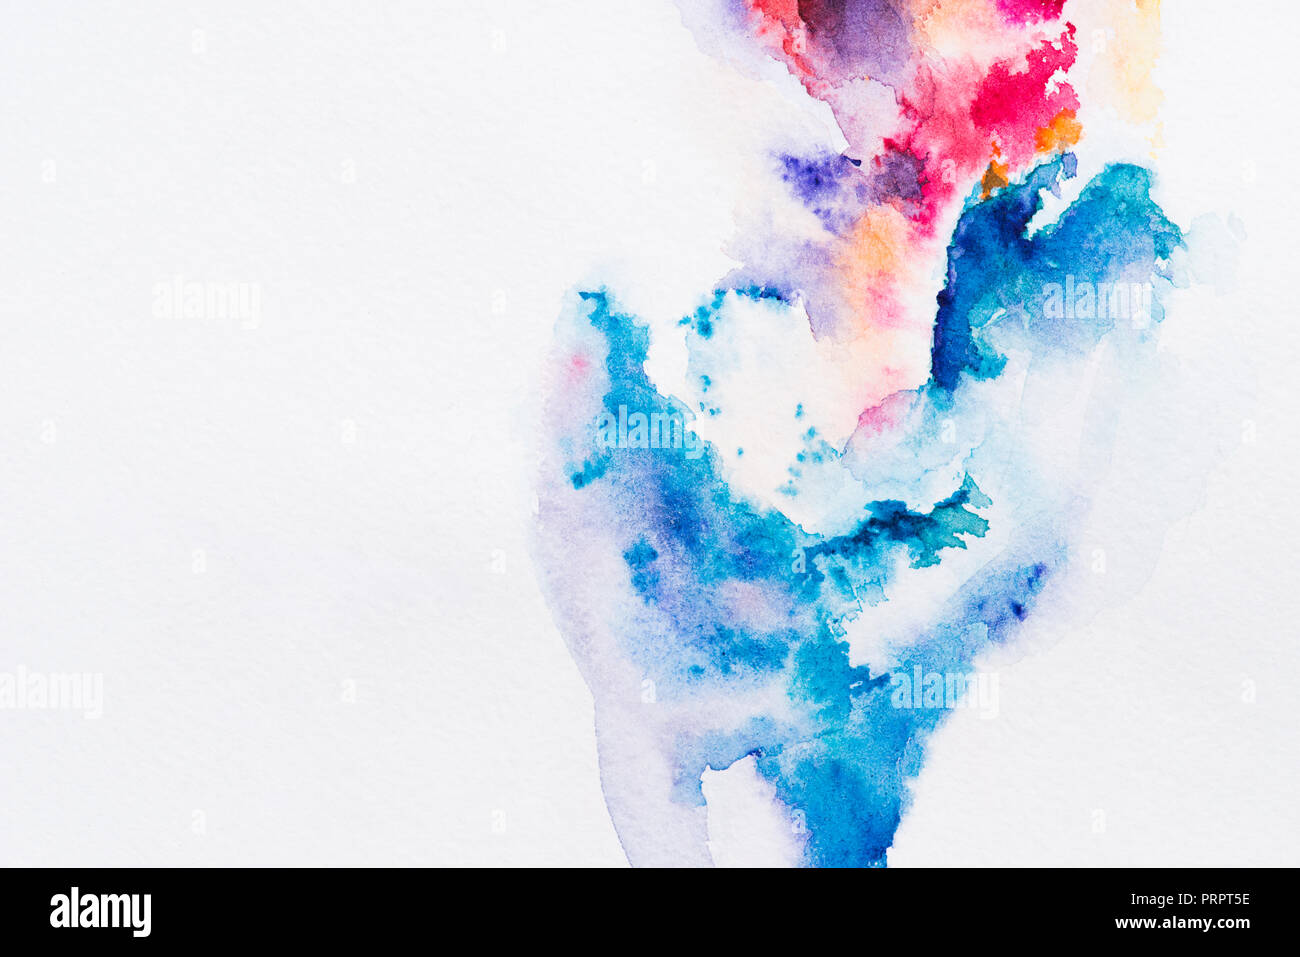 abstract painting with red and blue watercolor paints on white background stock photo 221163418 alamy red and blue watercolor paints